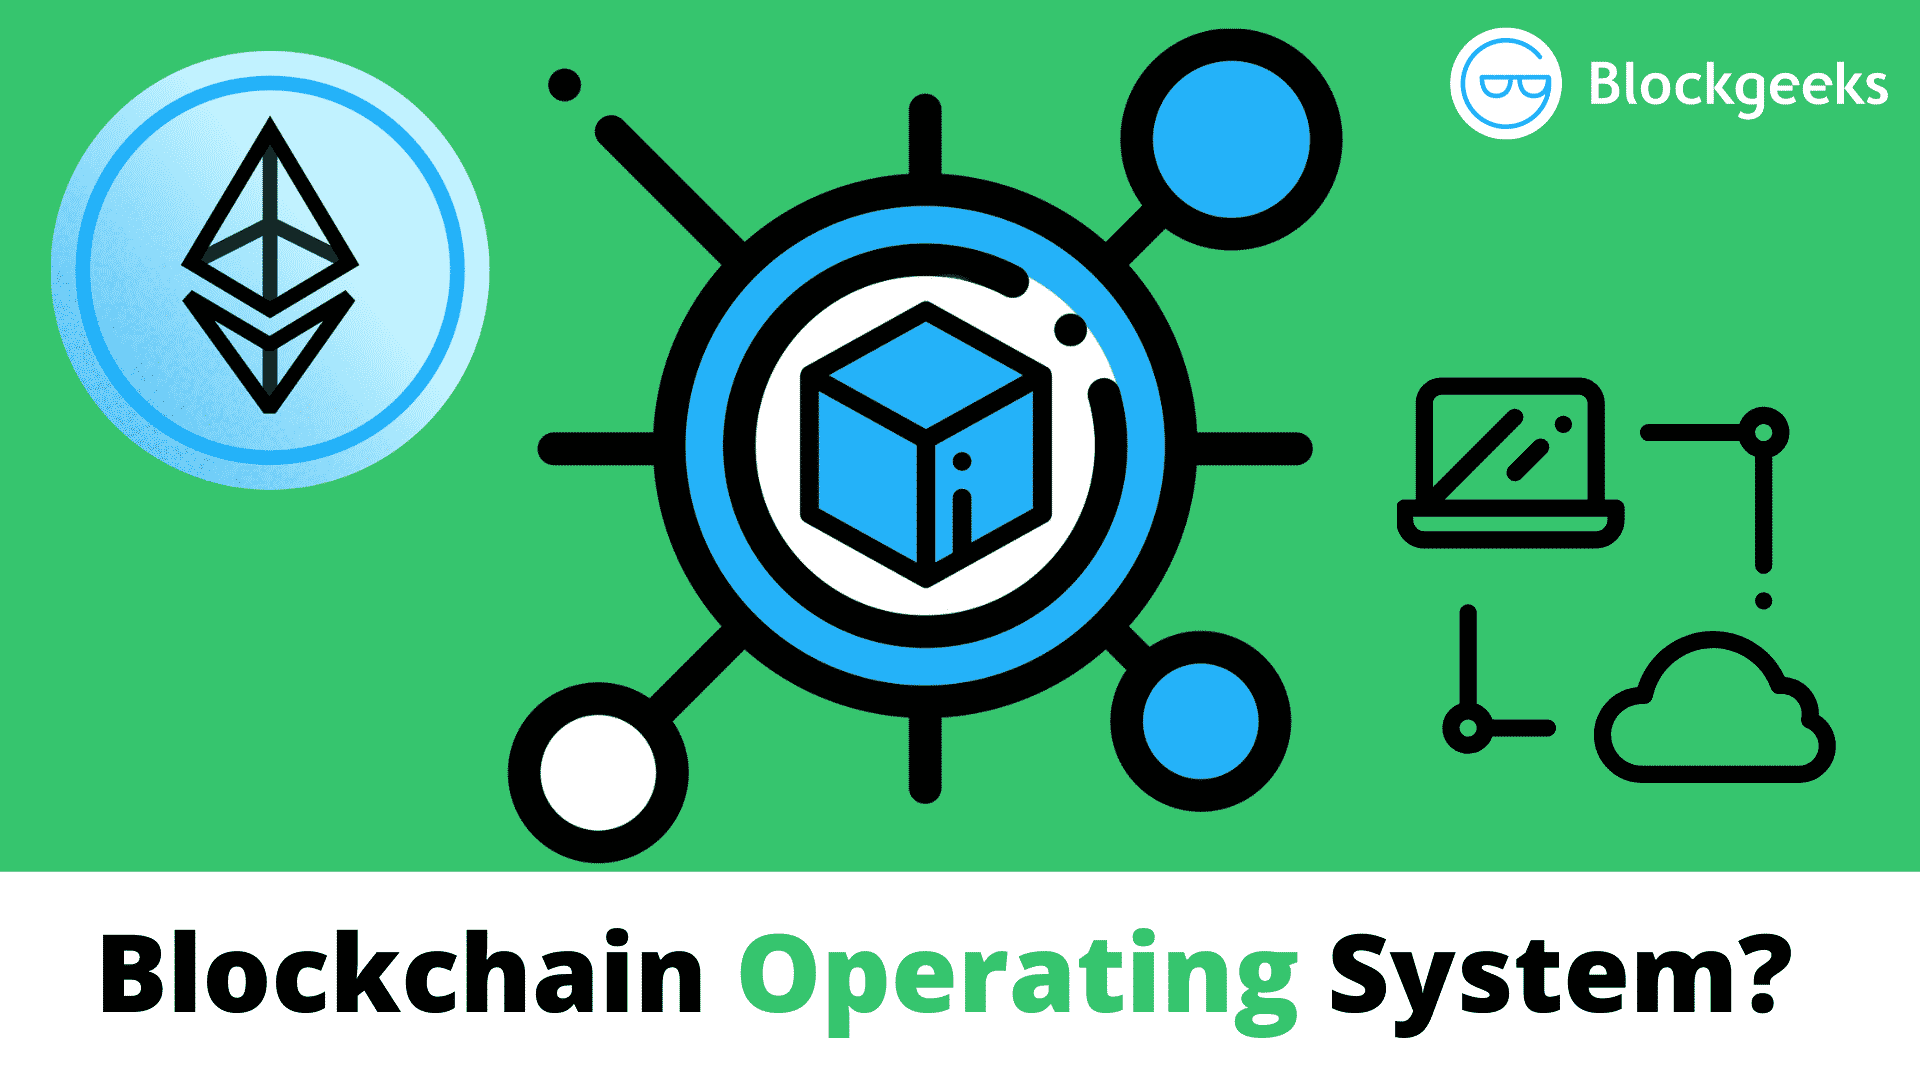 What is a Blockchain Operating System?